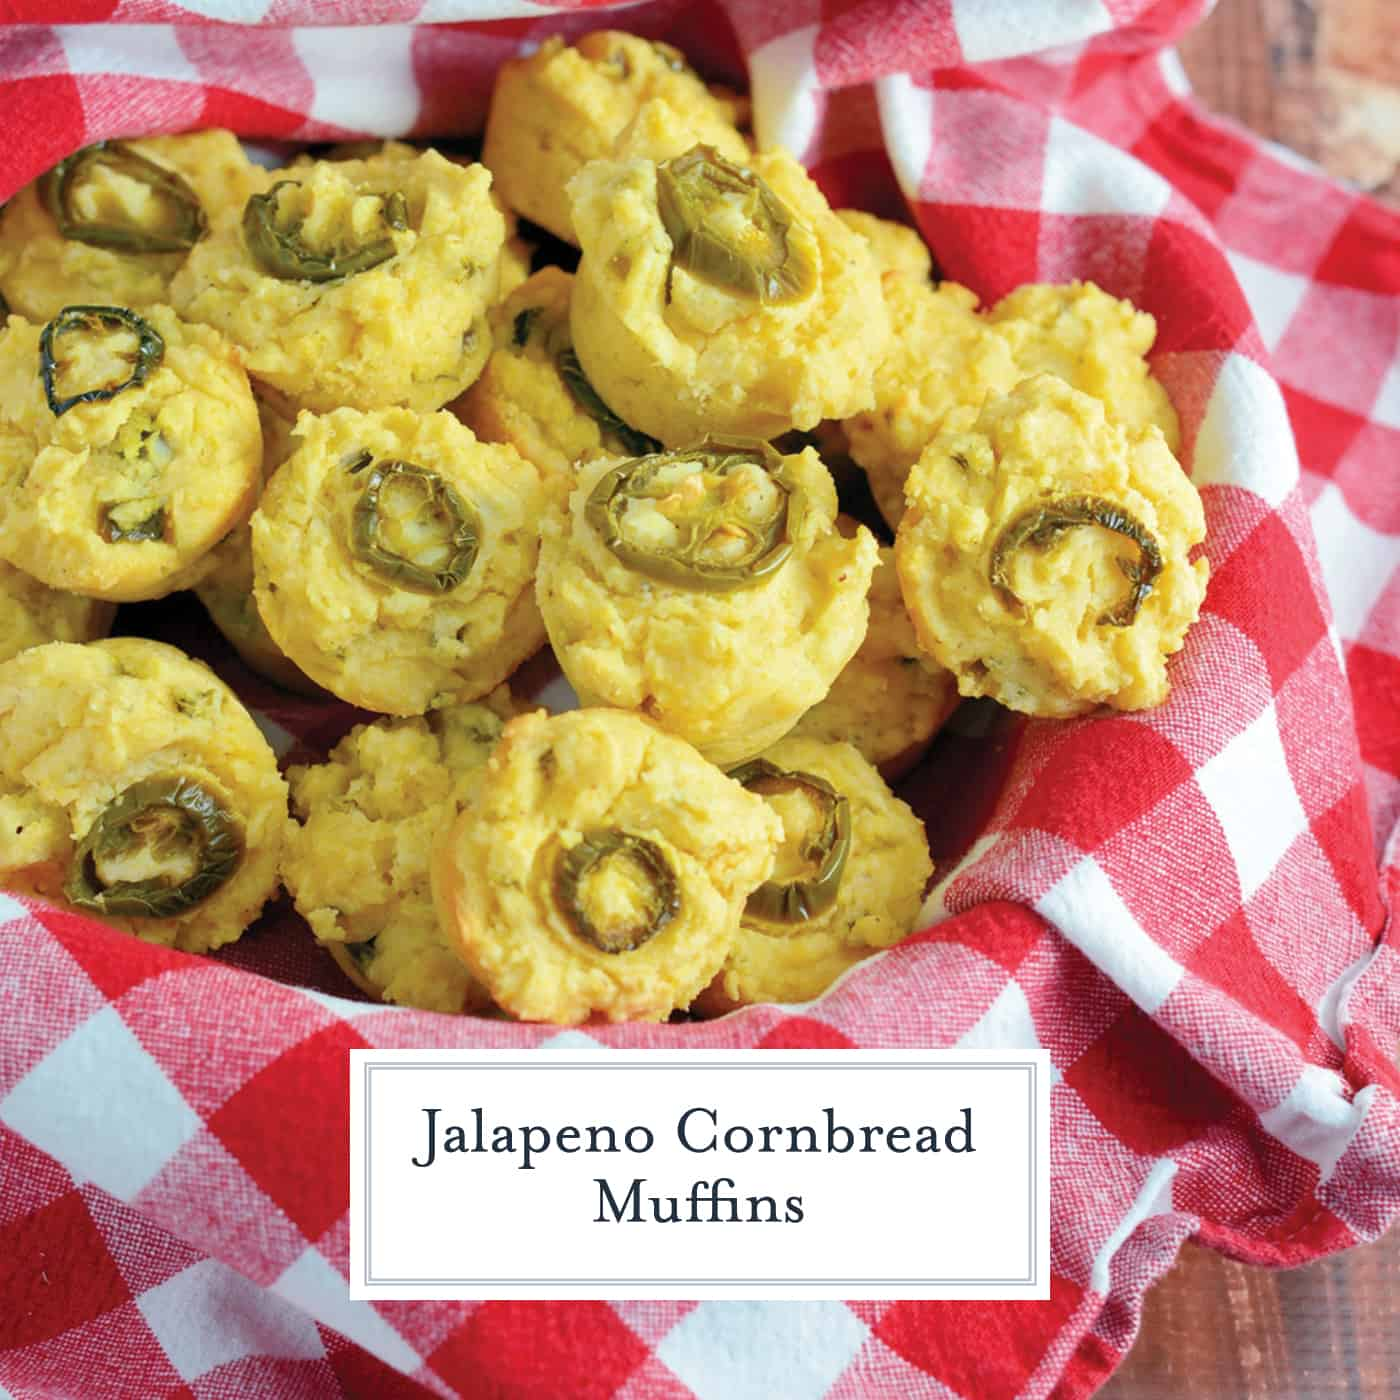 Jalapeno Cornbread Muffins are mini-muffins of sweet cornbread with spicy jalapenos. Perfect for serving with any Tex-Mex recipe and the perfect cornbread for chili! #cornbreadrecipes #jalapenocornbread www.savoryexperiments.com